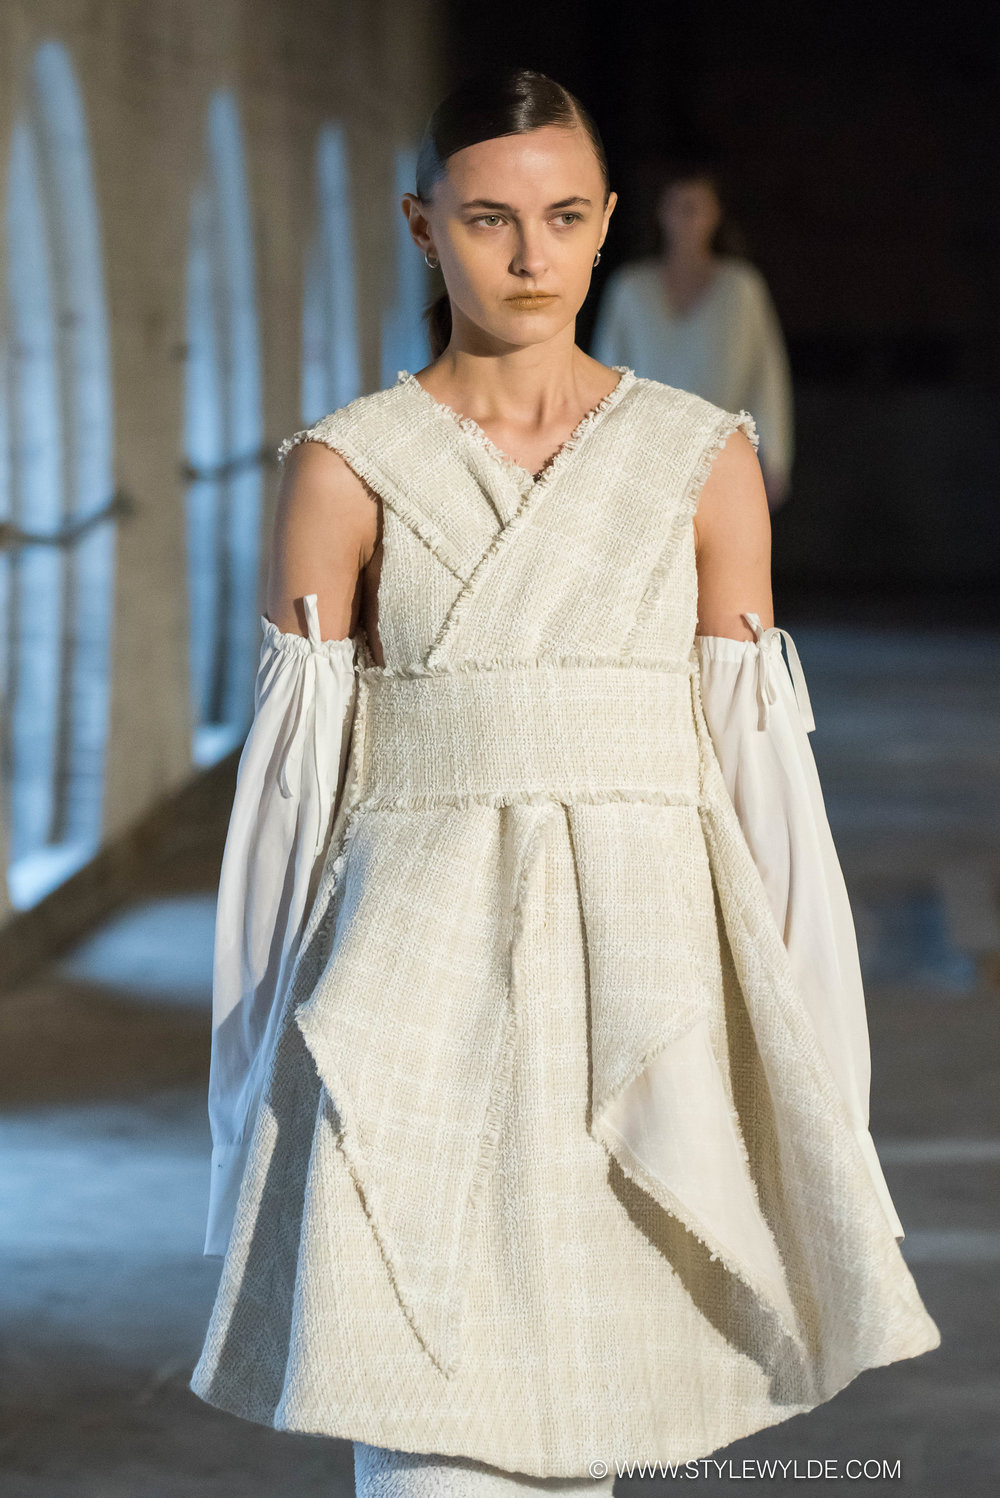 A cut above - Exquisite tailoring and a deft hand at balancing unusual details with sophisticated minimalism, designer Mark Kenly Domino Tan has been a major star of Copenhagen Fashion Week for ages, and his spectacular Fall 2018 collection more than lived up to that reputation.